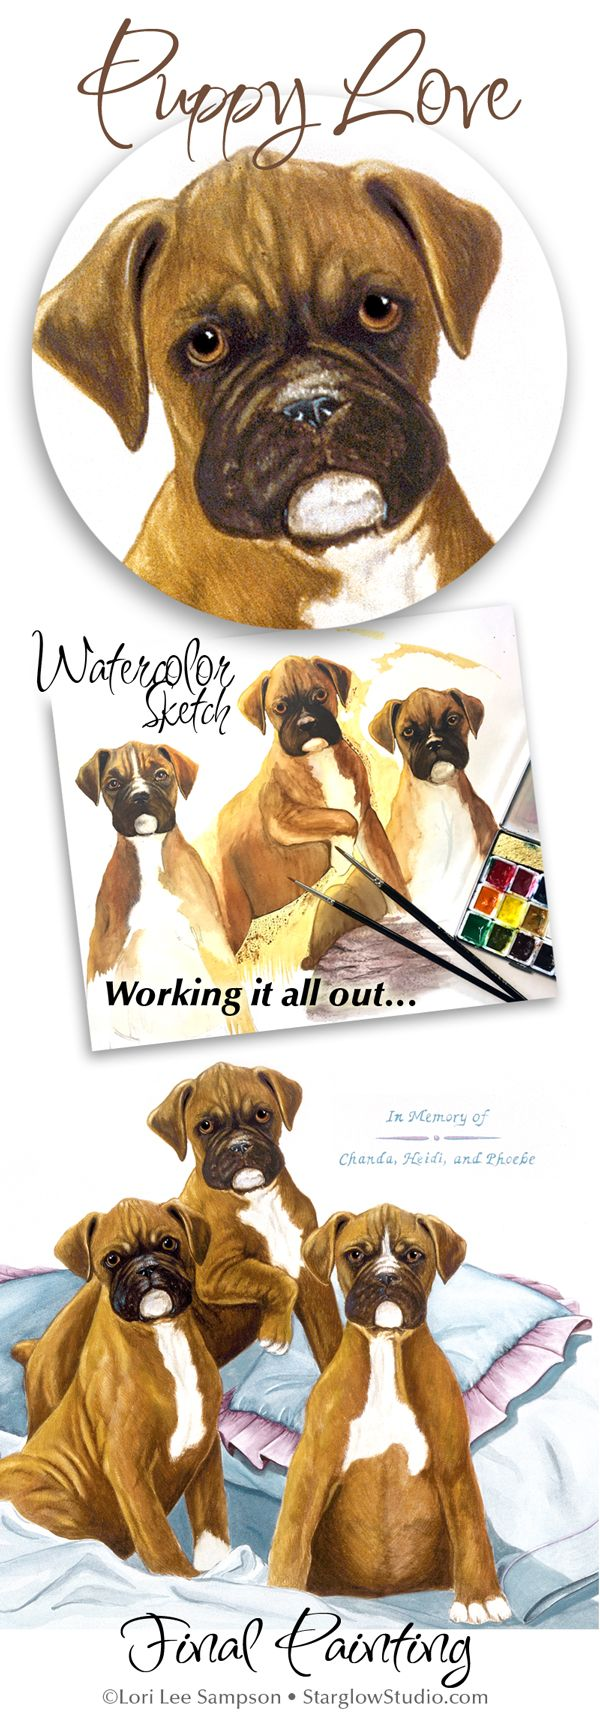 Please vote for this entry in the Pet Portrait Challenge! You can vote EVERYDAY and from EACH device at  https://wyng.io/iGIq8R You don't even have to vote for mine, but would really appreciate it! THANKS!   These darling puppies were mine! The final painting is 16x20 on watercolor board. I framed it for a dear cousin's wedding gift since one of the puppies went to her. #puppies #boxerpuppies #watercolorpainting #dogportrait #petportrait #petportraitchallenge